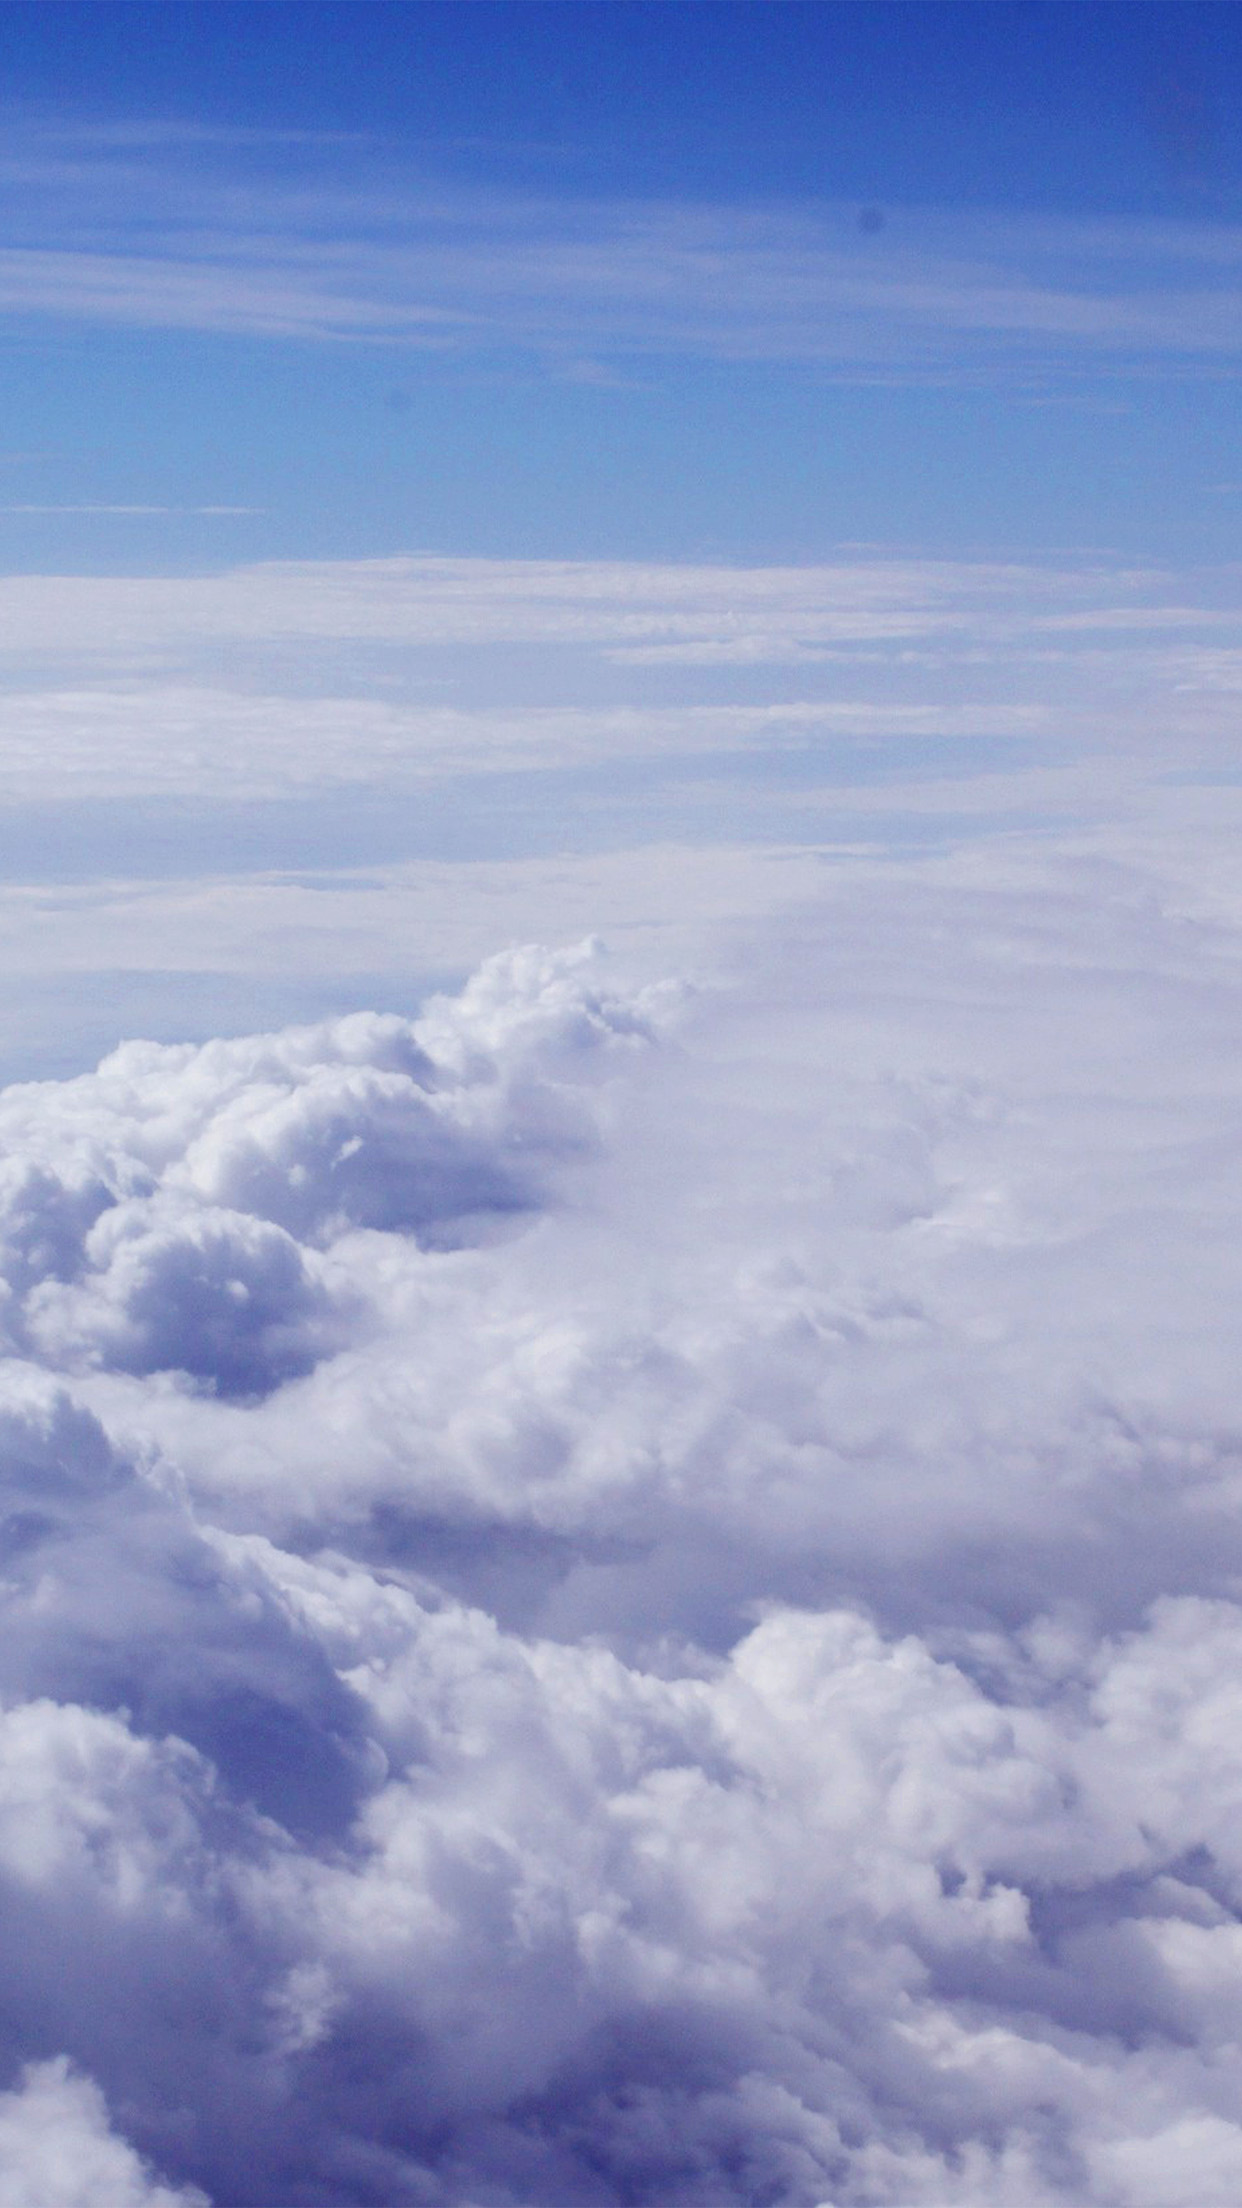 All About Cars >> Sky Blue Clouds Nature Fly I Believe Android wallpaper ...